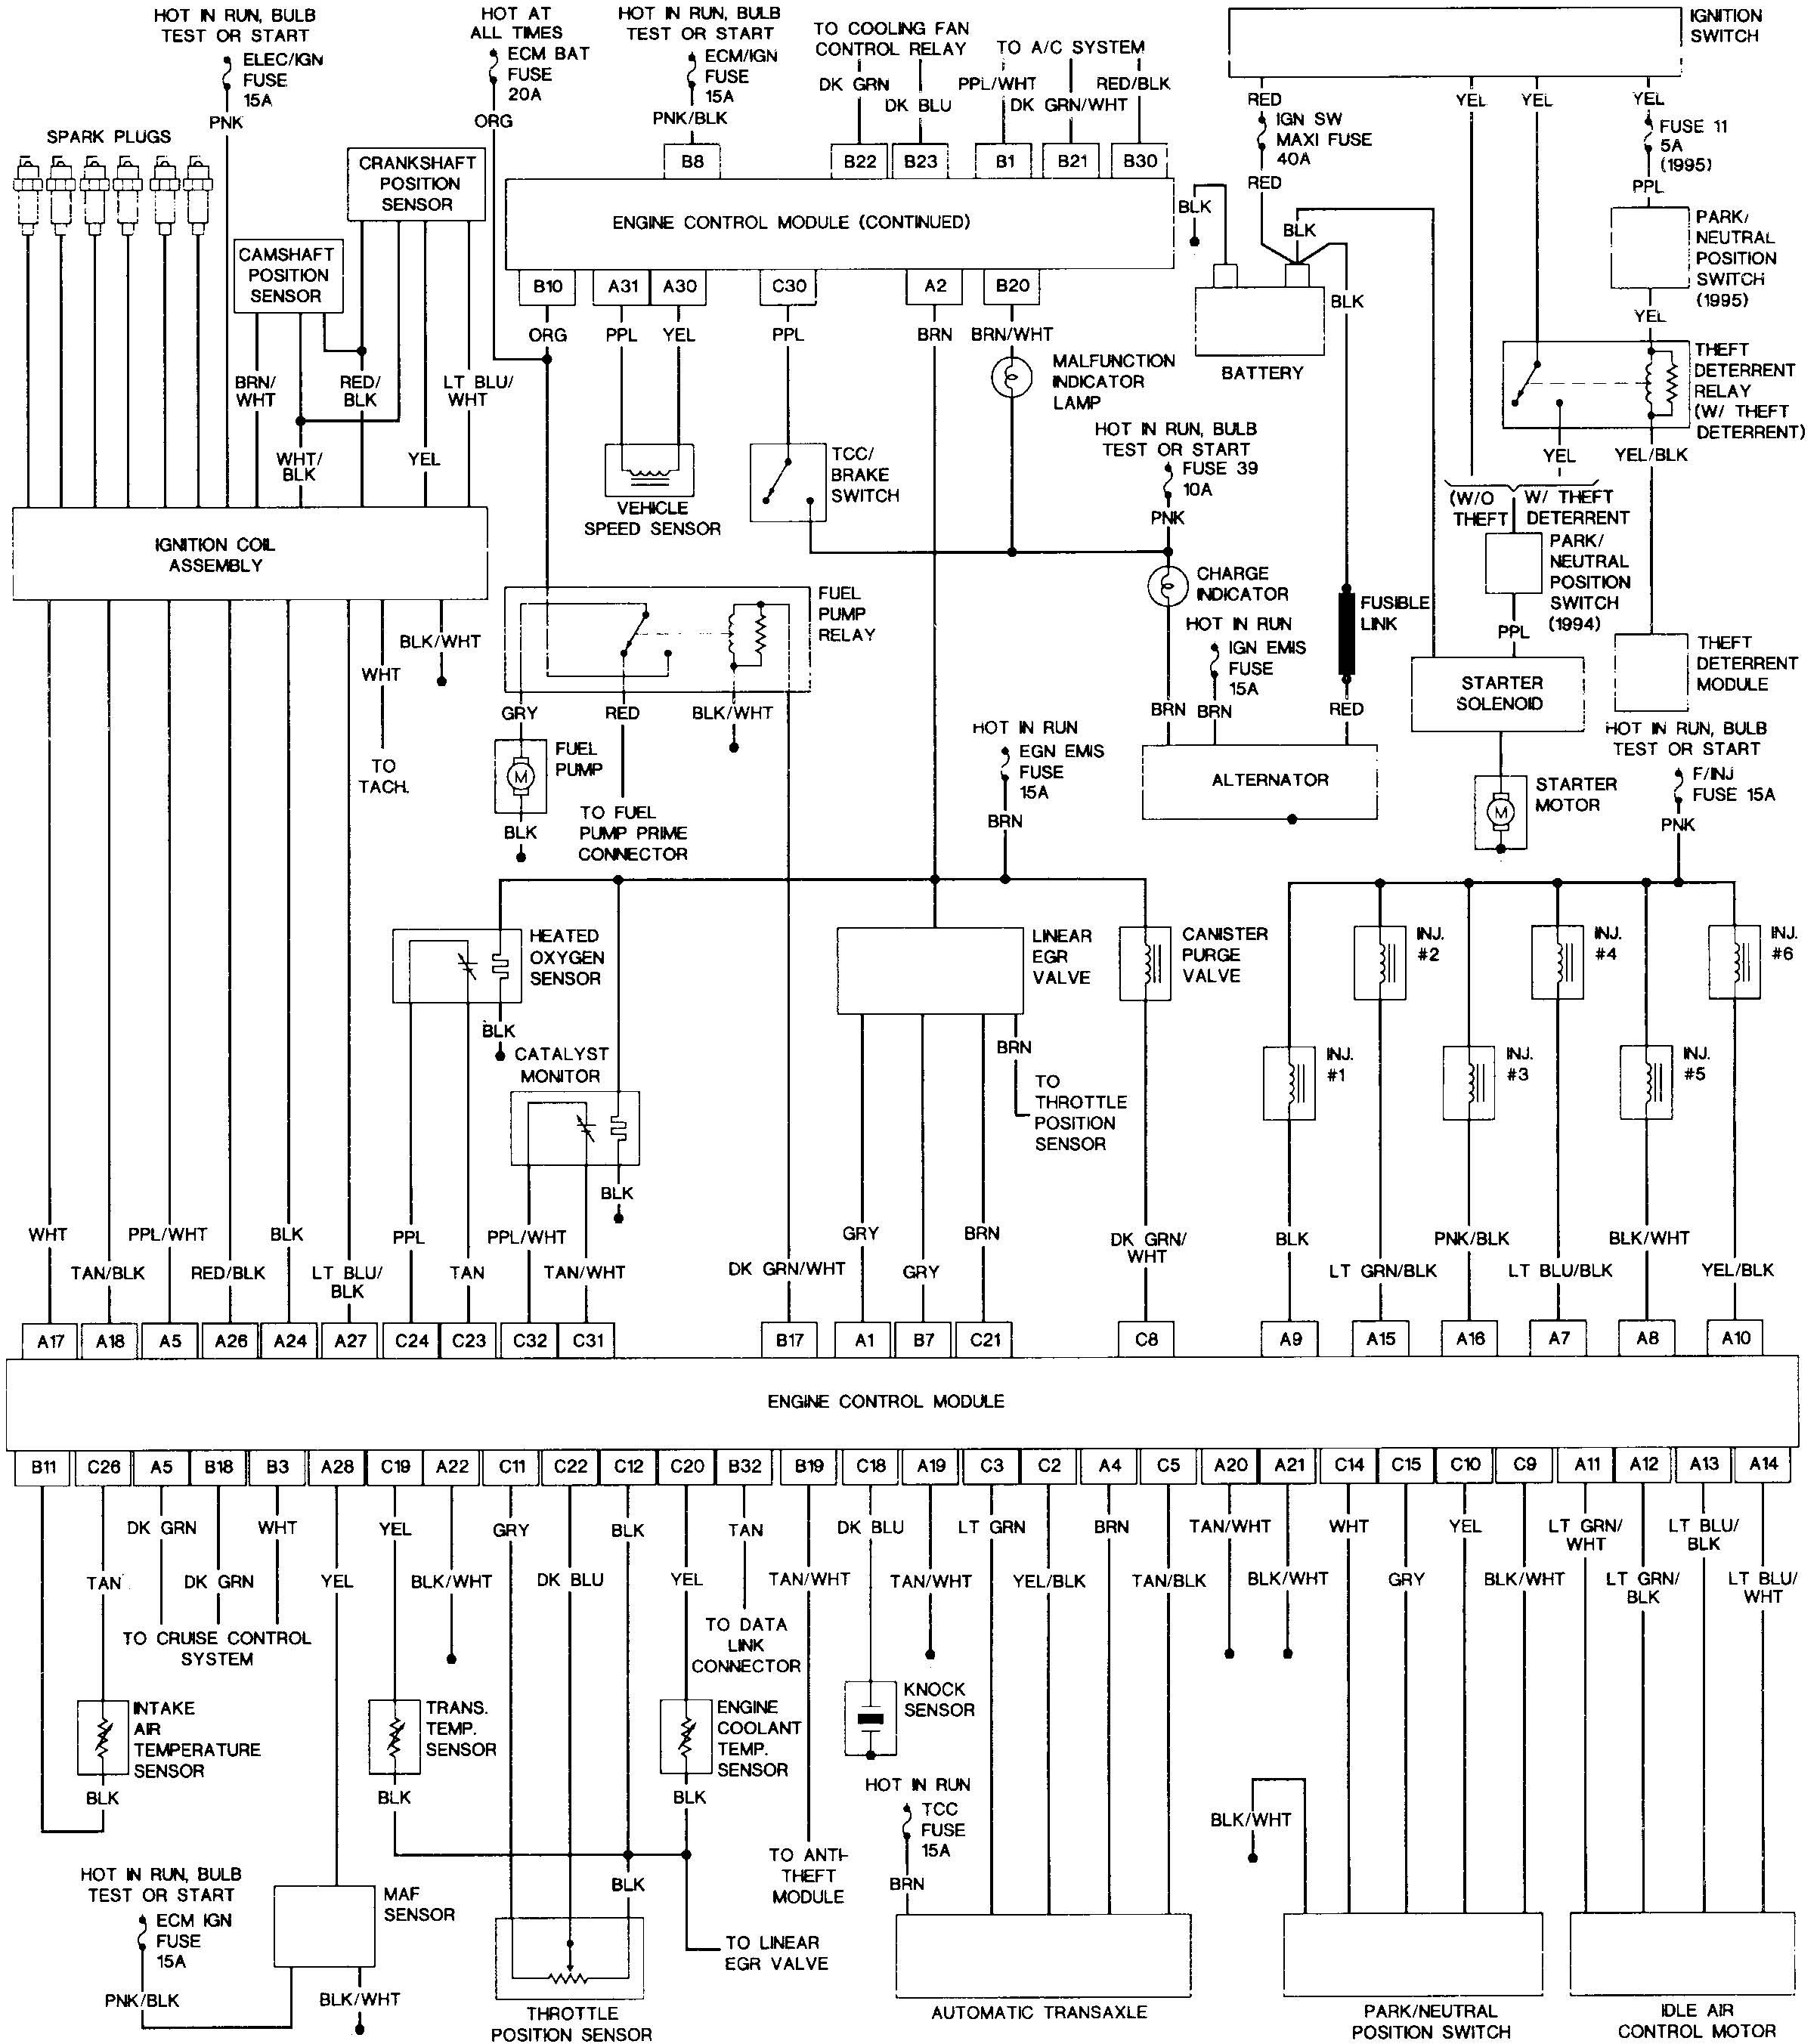 2006 Jeep Grand Cherokee Engine Diagram 2000 Jeep Grand Cherokee Radio  Wiring Diagram Elvenlabs Of 2006